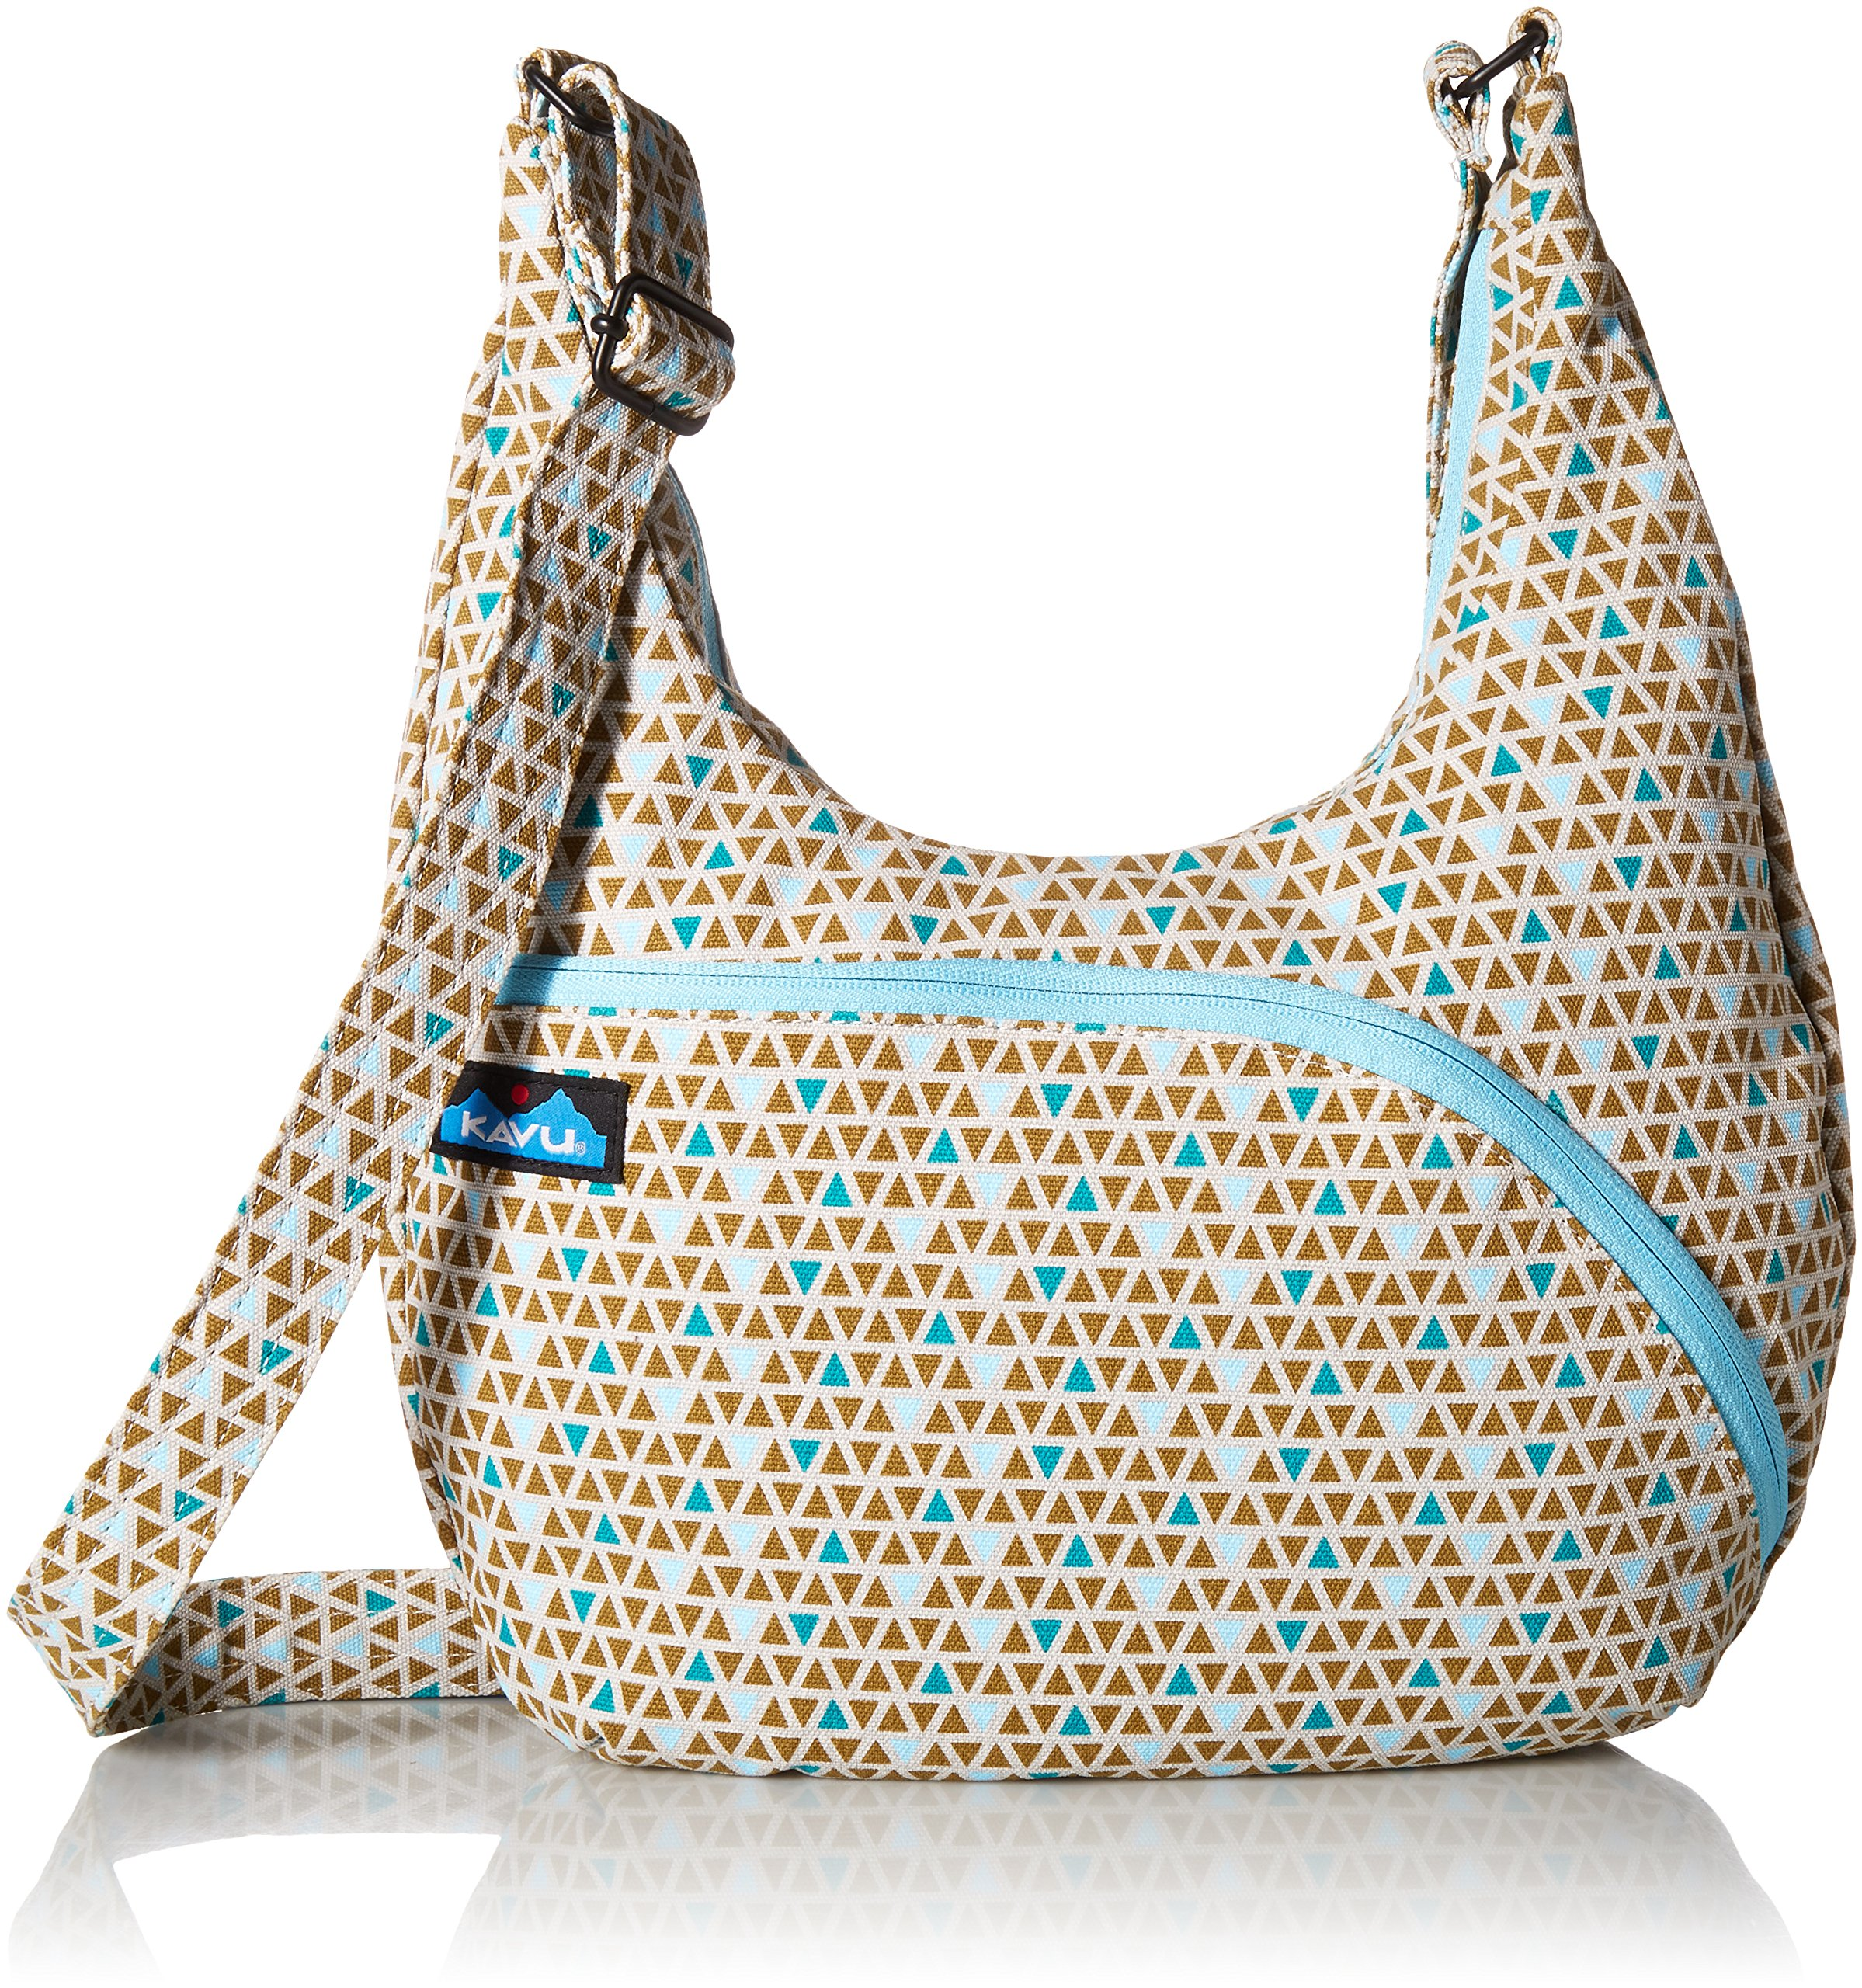 KAVU Women's Sydney Satchel, Mini Specks, One Size